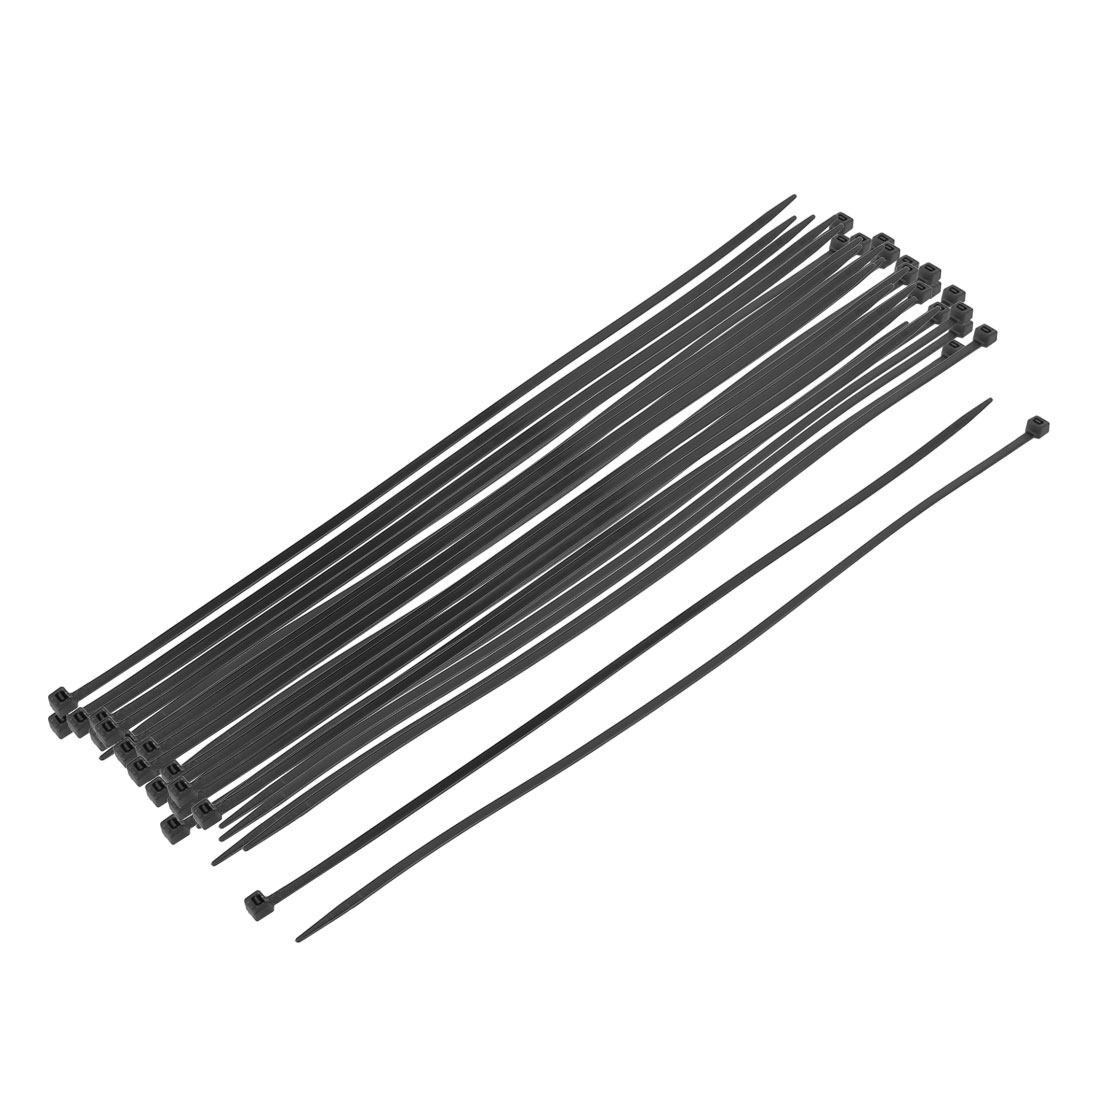 35 pcs Black Self-Locking Nylon Wire Cable Zip Ties Cord Strap Wrap 3 x 295mm